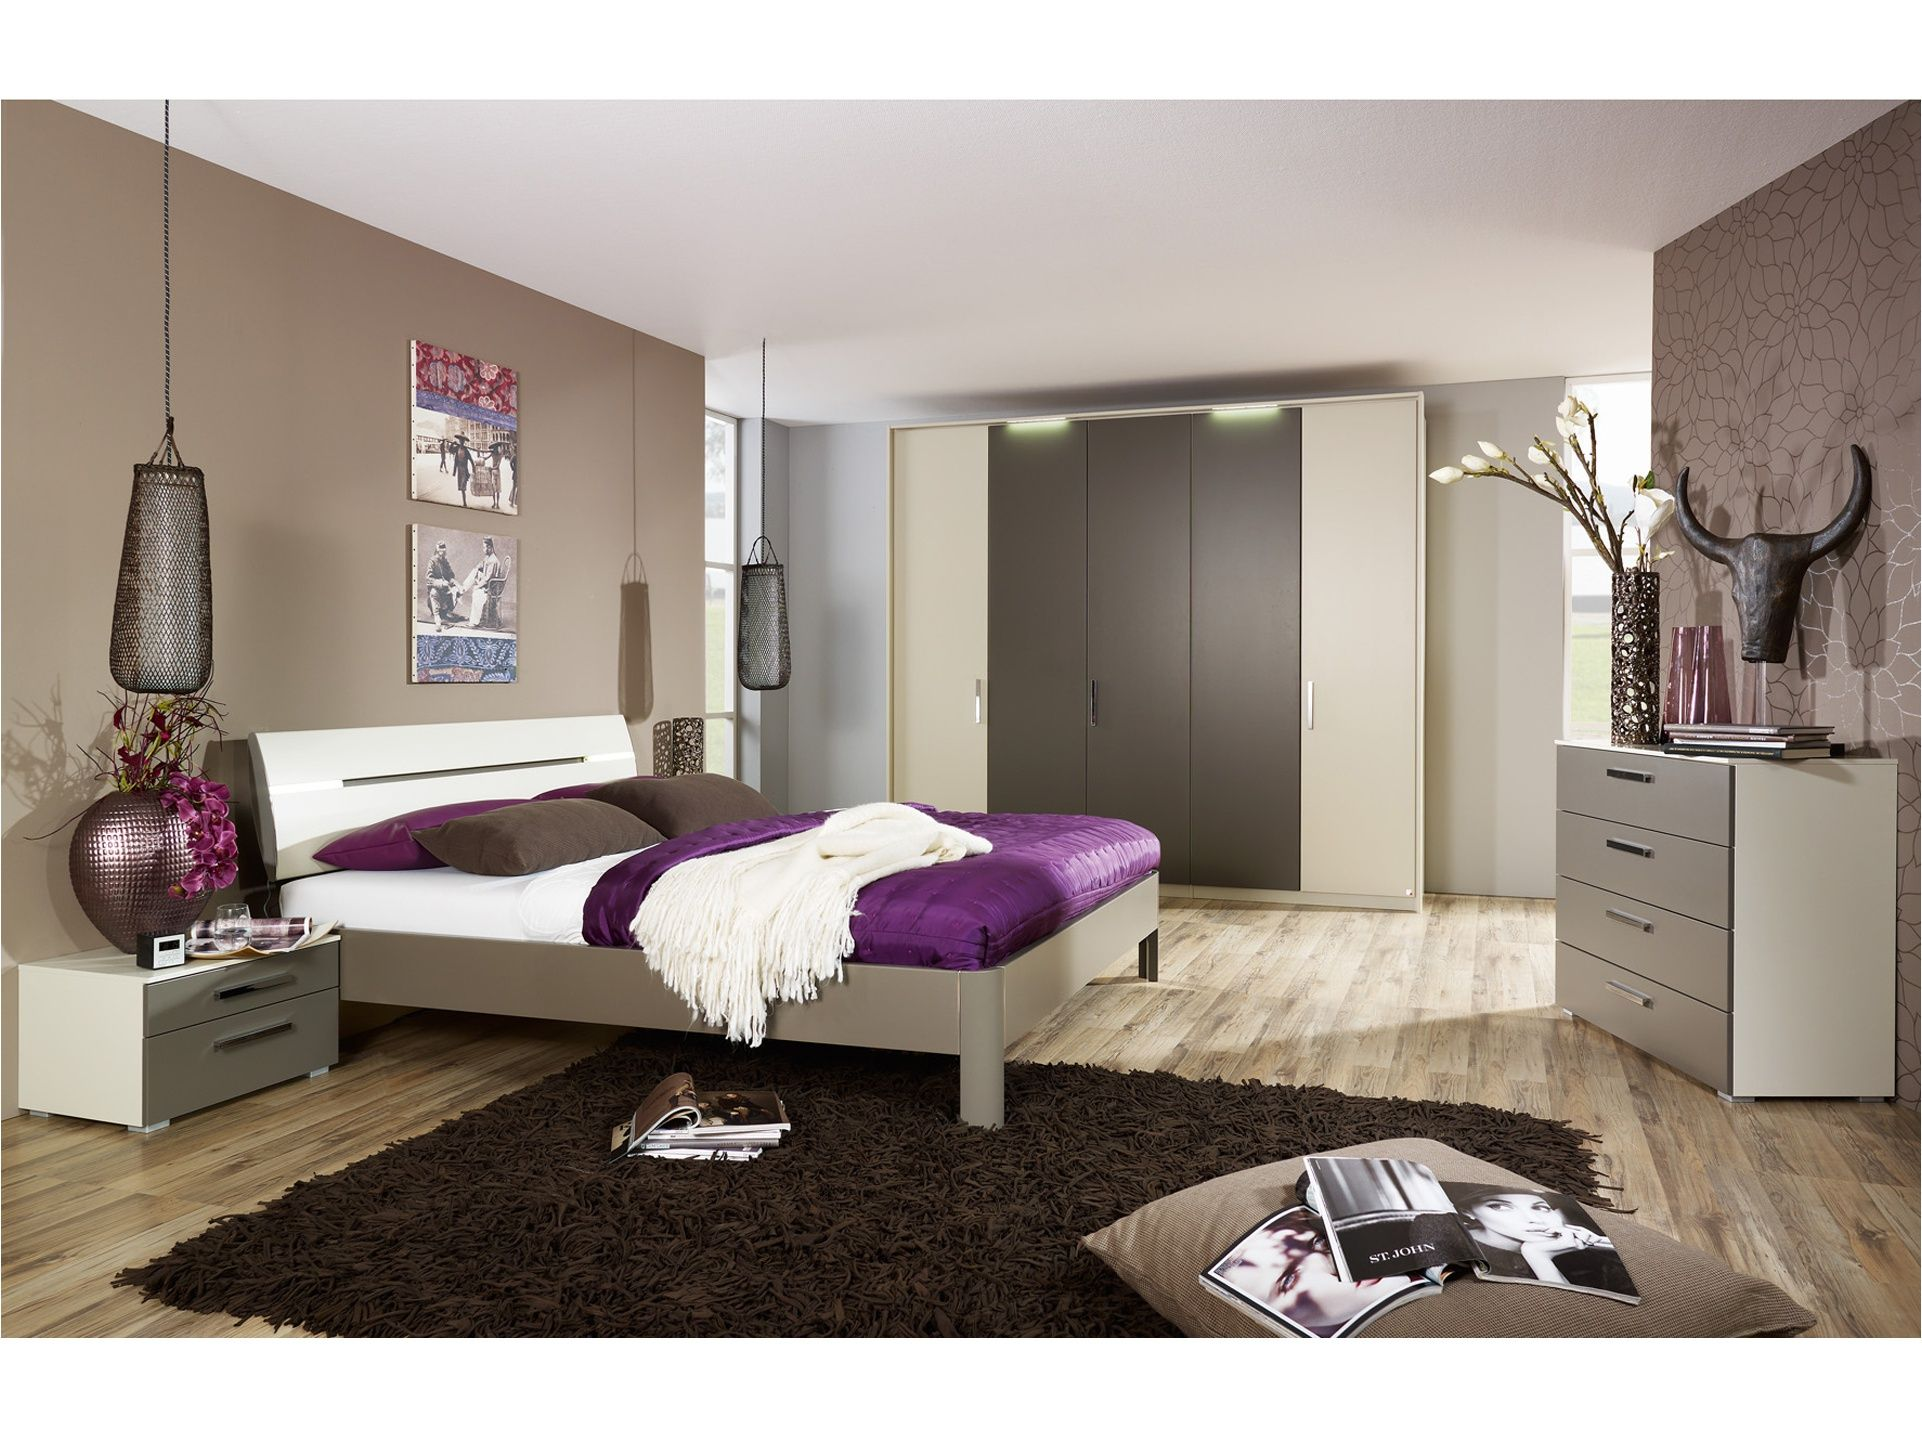 Chambre coucher adulte moderne deco pinterest for Decoration chambre a coucher adulte moderne